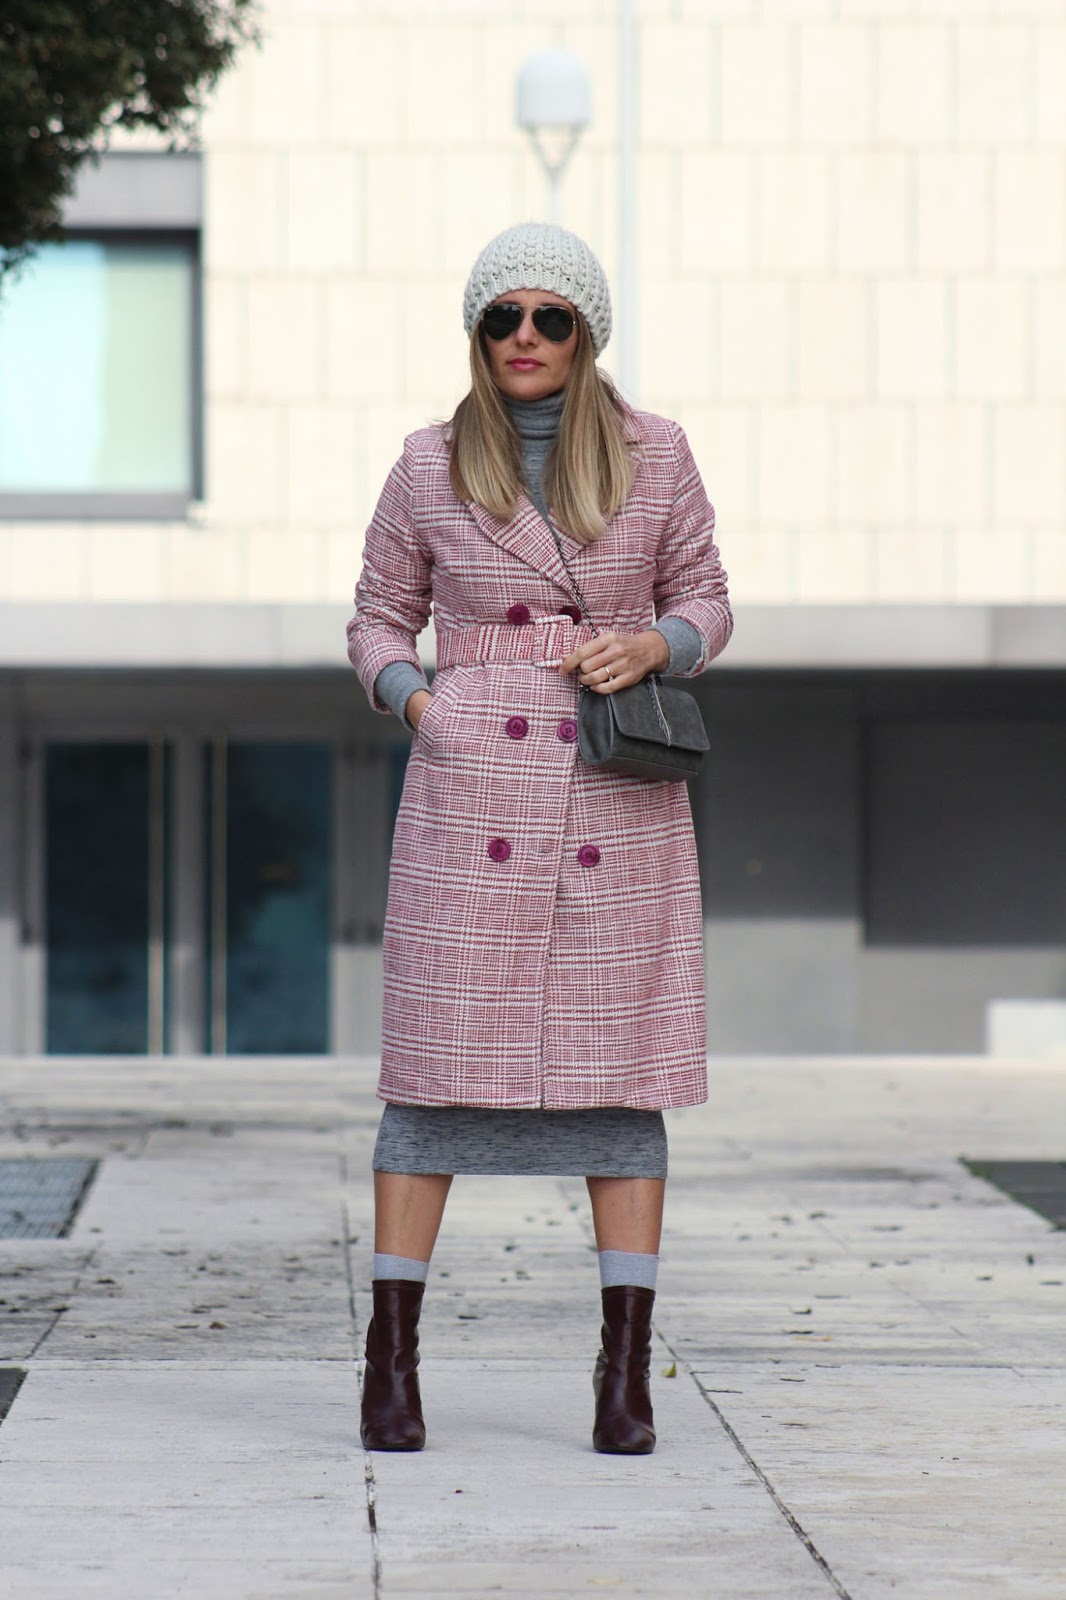 Outfit - Come indossare un check coat - Eniwhere Fashion